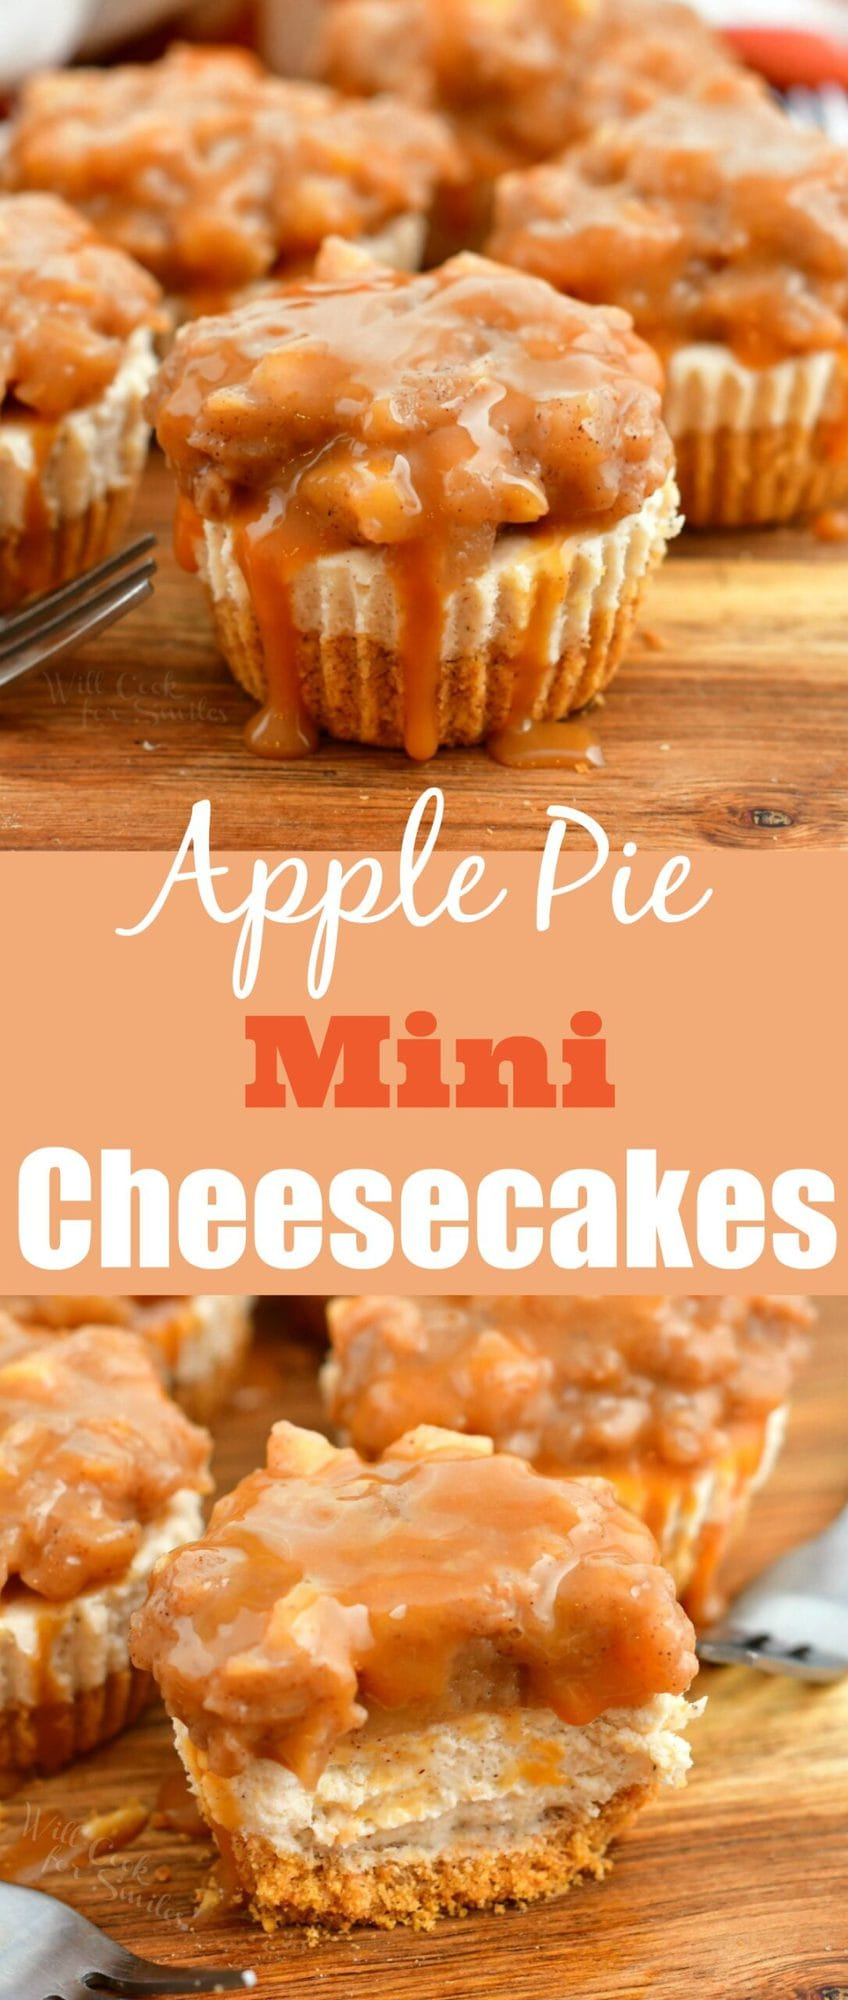 titled image (and shown): Apple Pie Mini Cheesecakes